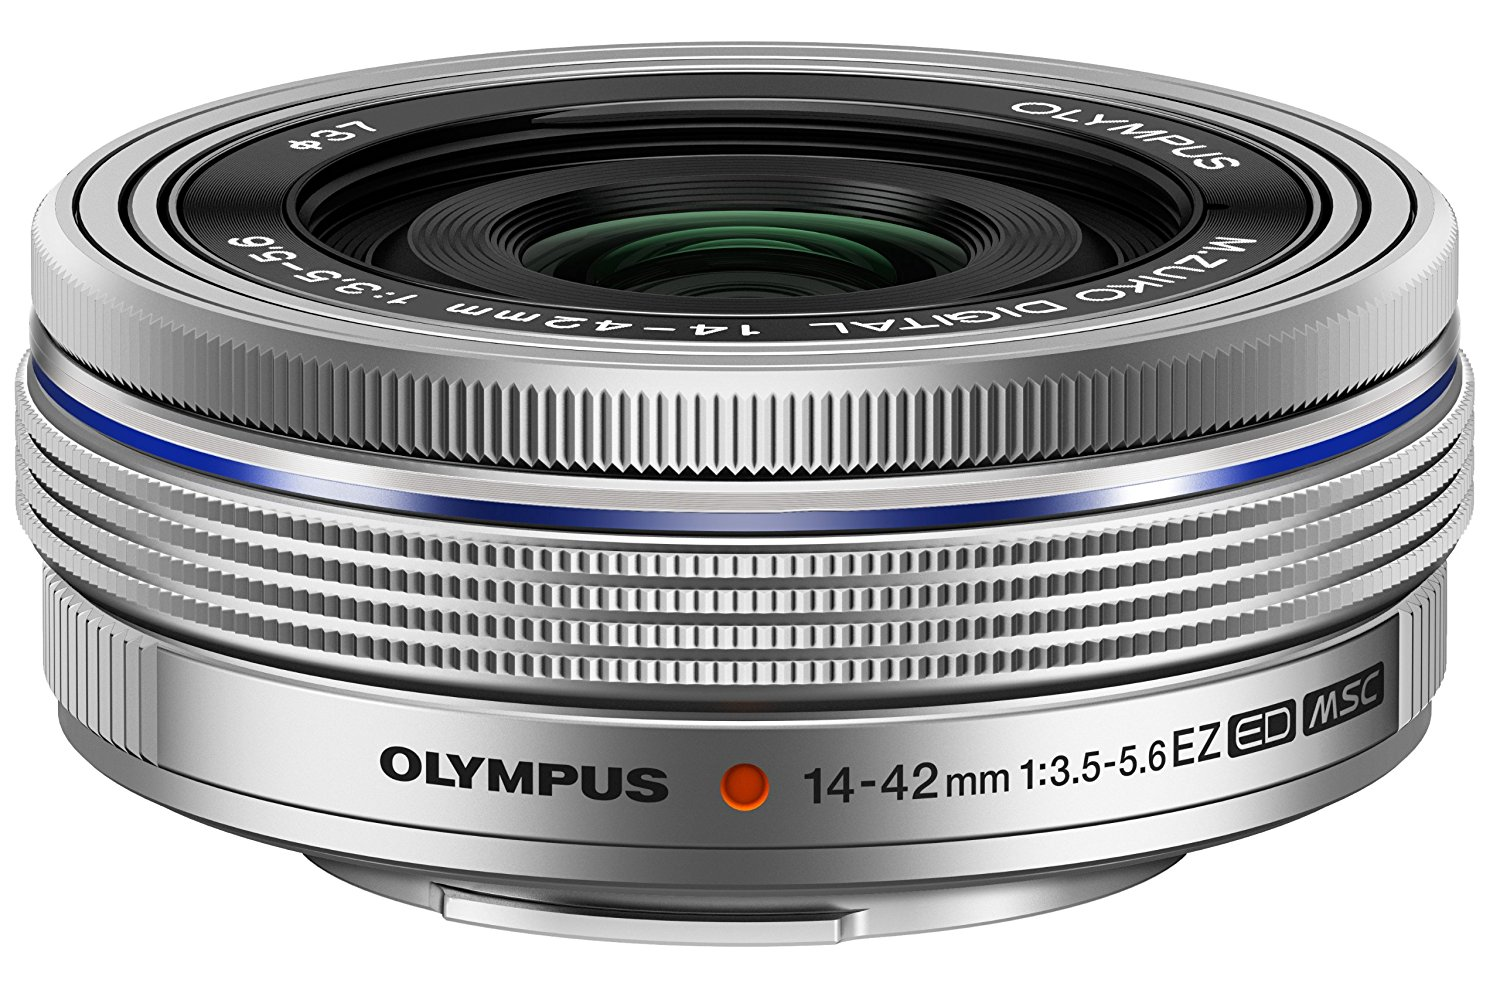 Olympus 14-42mm f3.5-5.6 - Best Lens For Street Photography